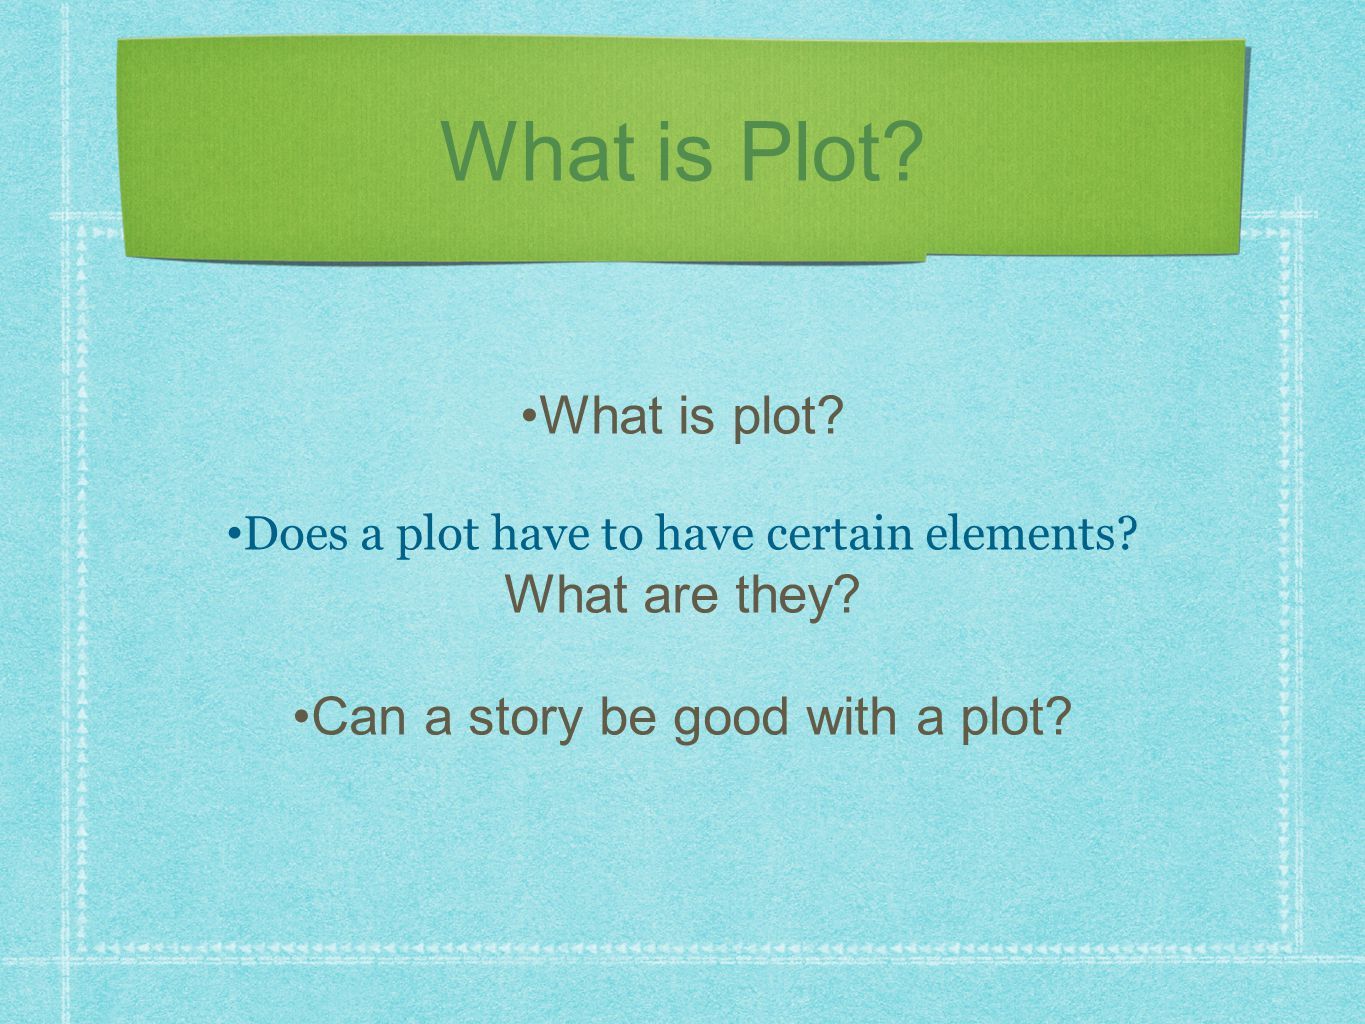 What is plot? Does a plot have to have certain elements? What are they? Can a story be good with a plot?